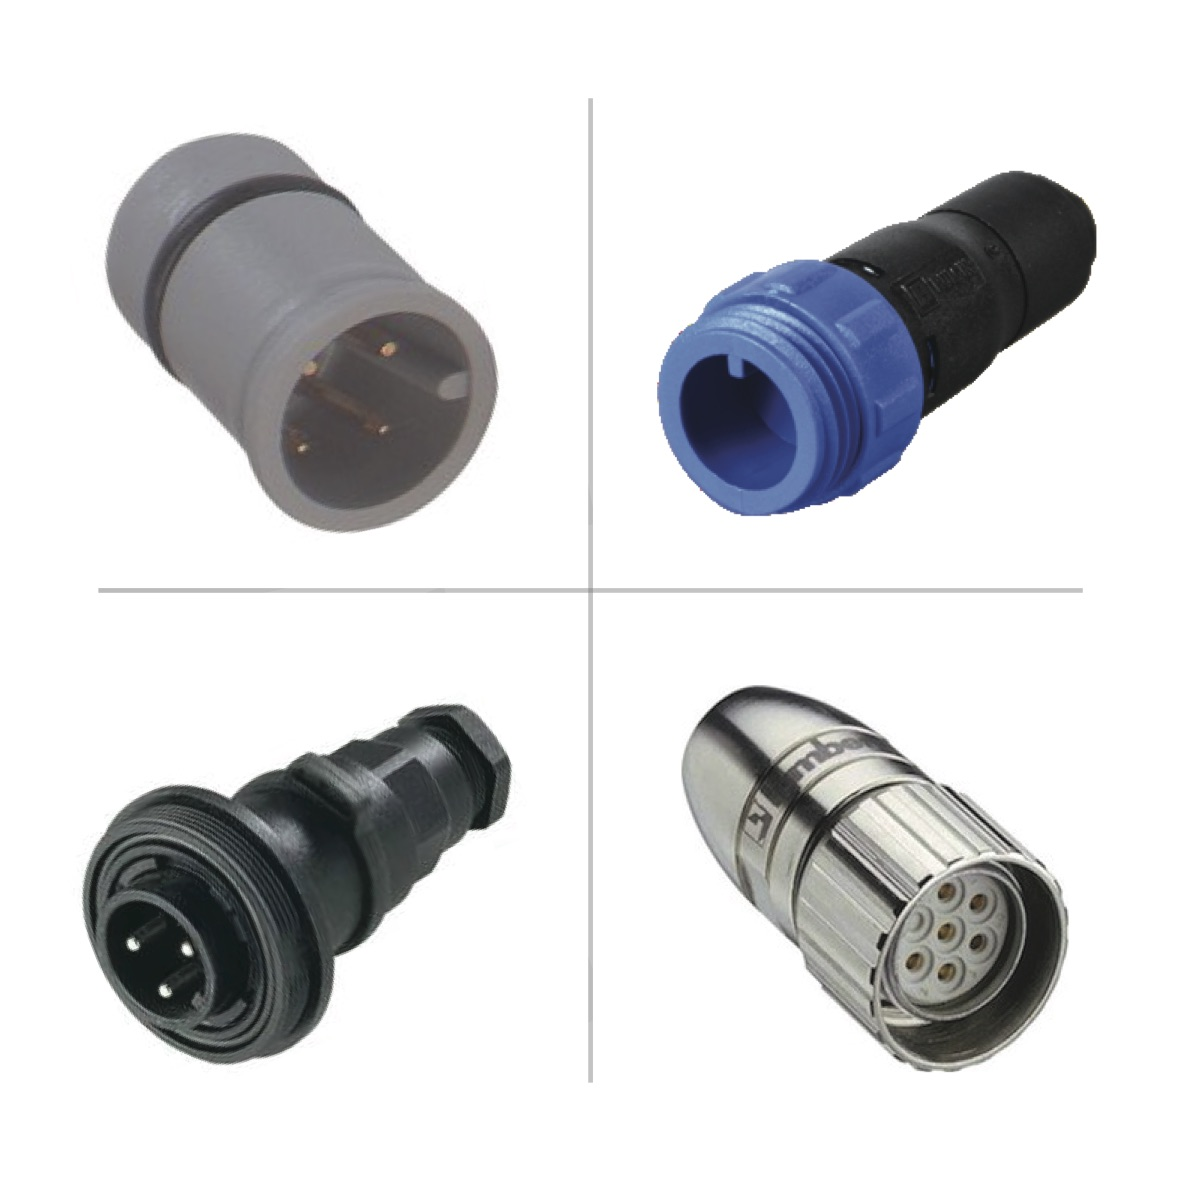 Waterproof Connectors